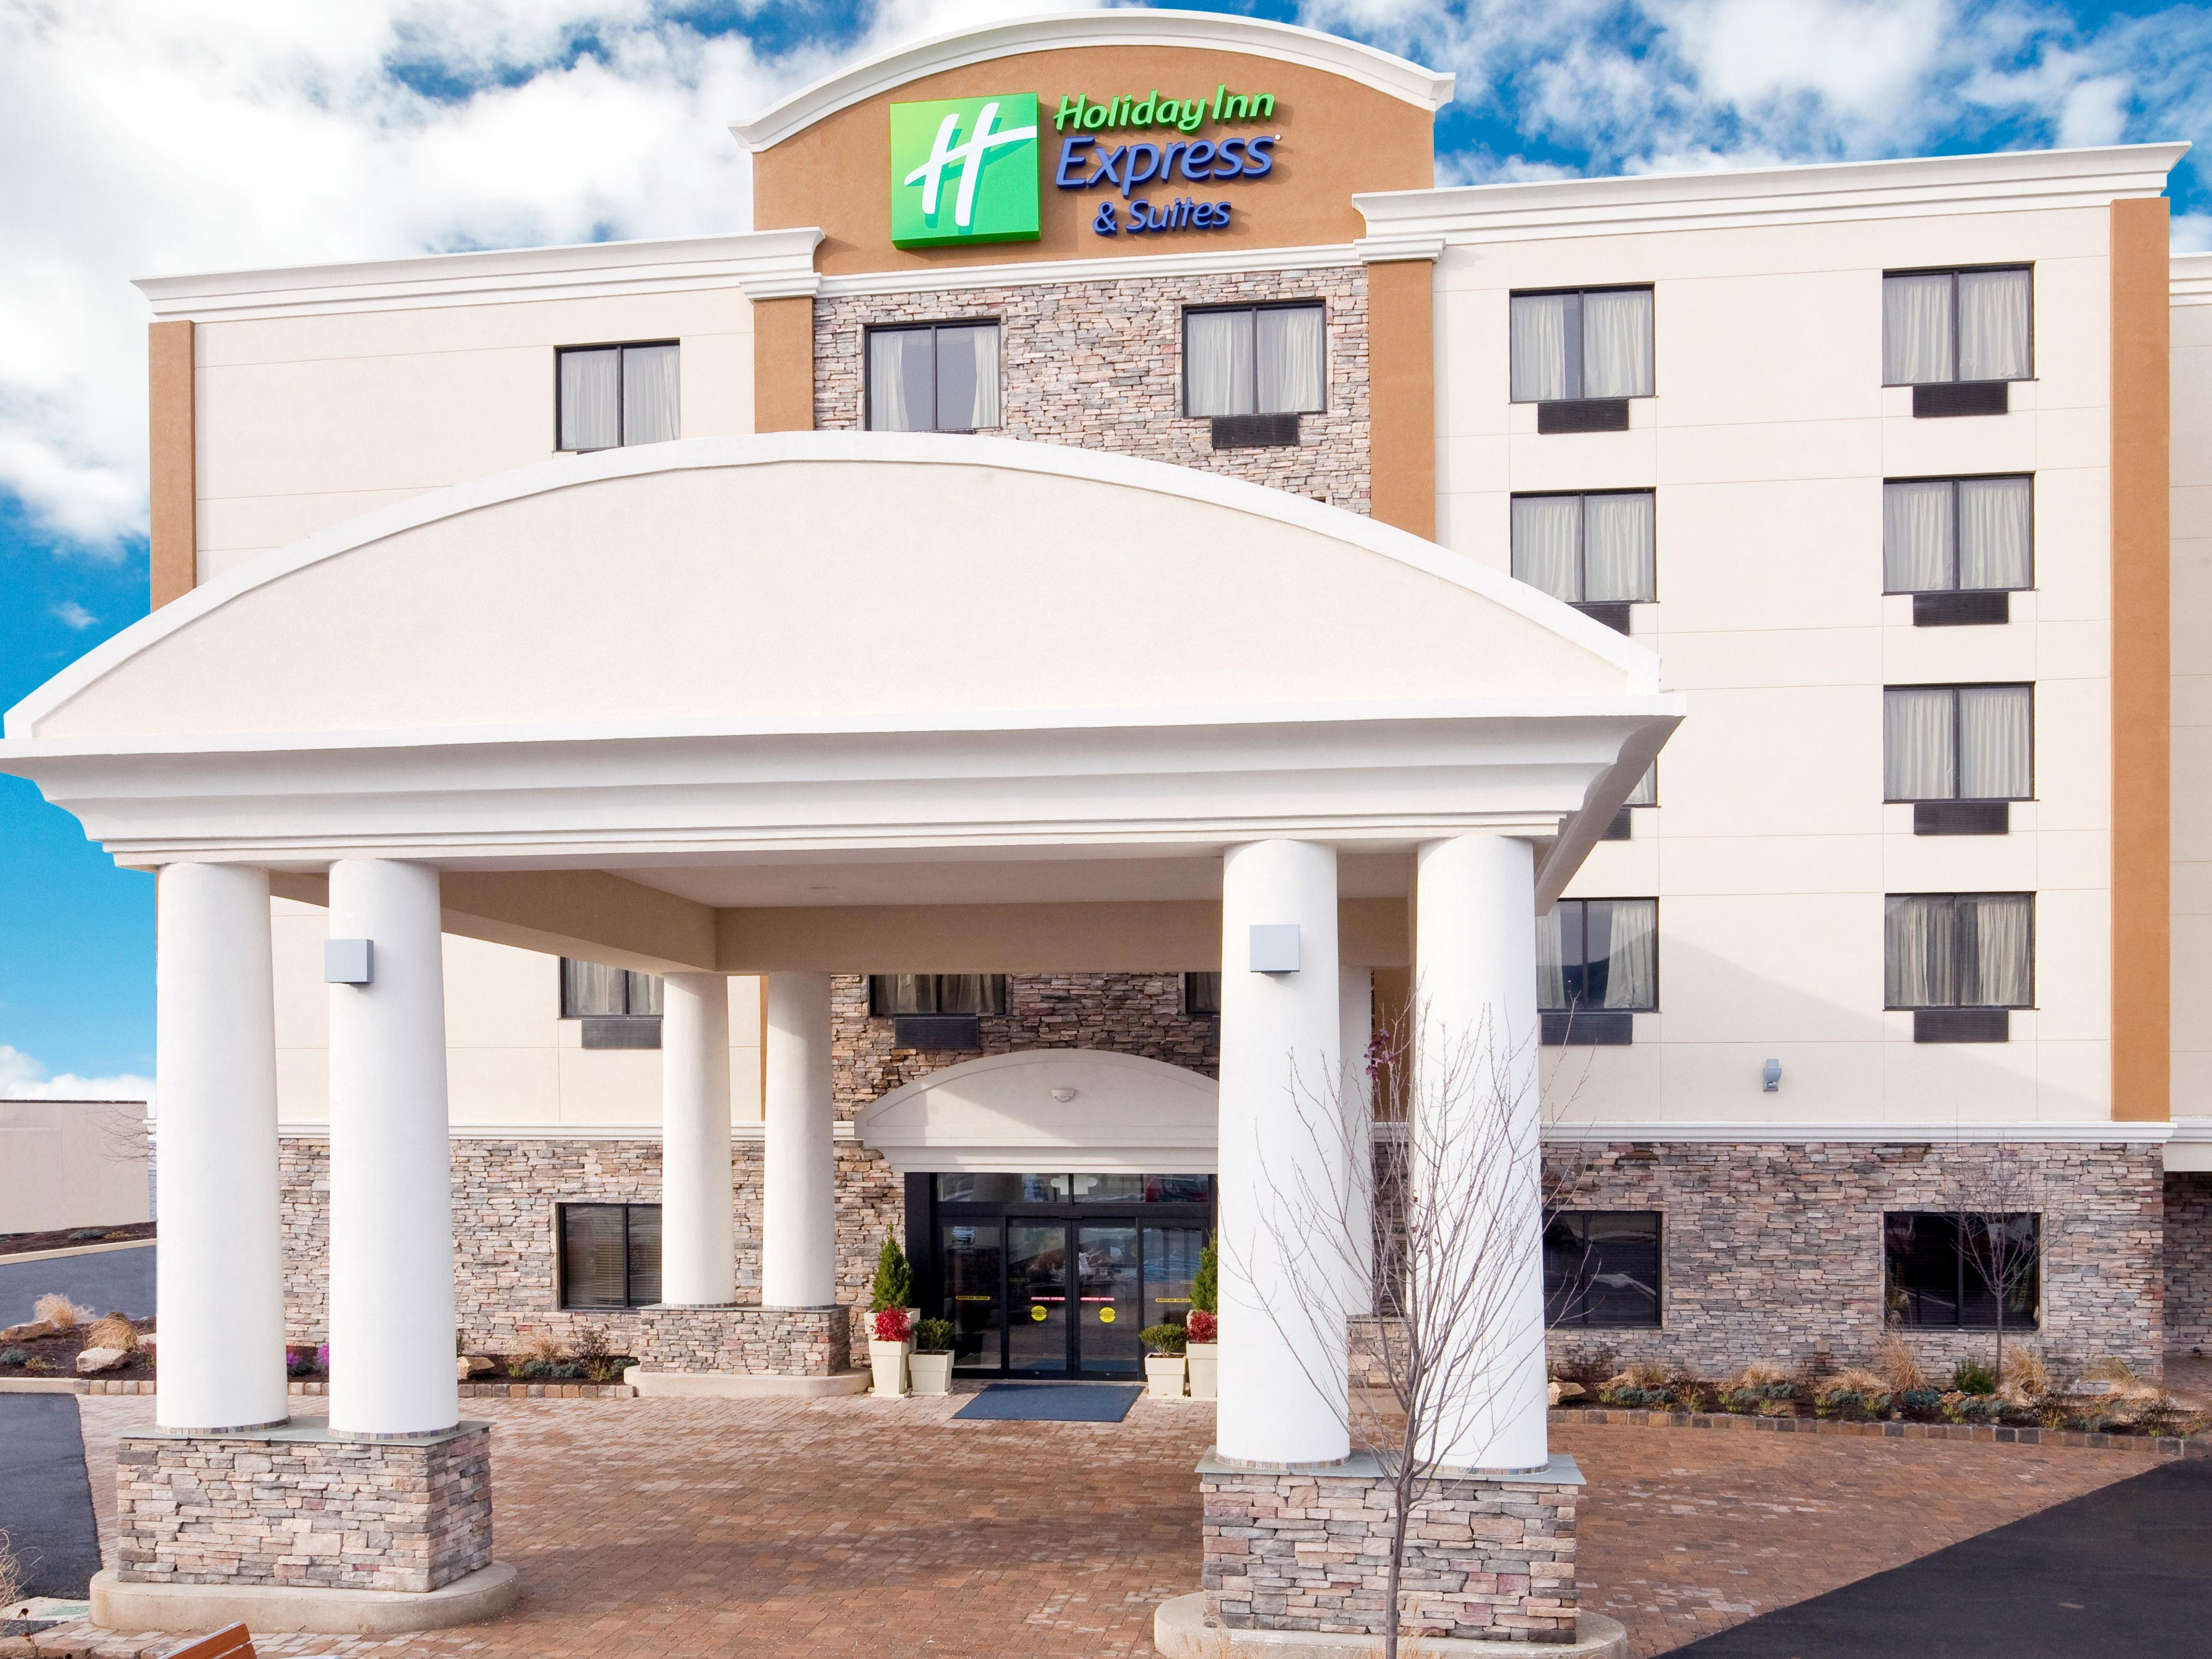 The Holiday Inn Express Hotel and Suites Williamsport